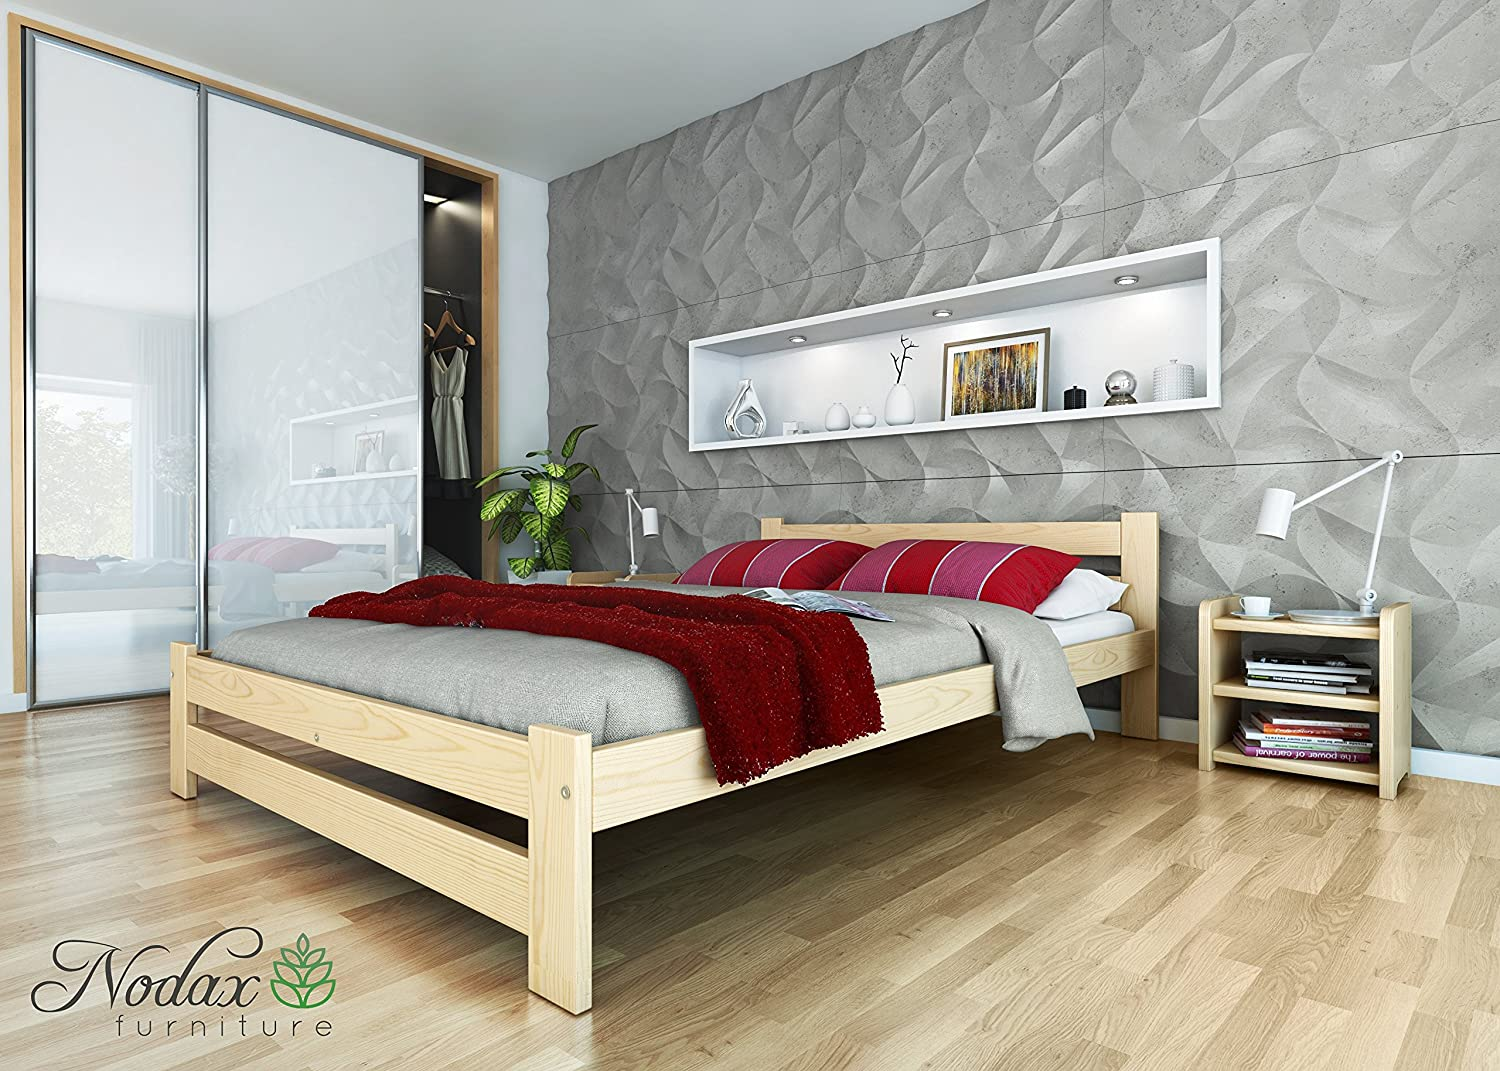 New wooden solid pine king size bed frame